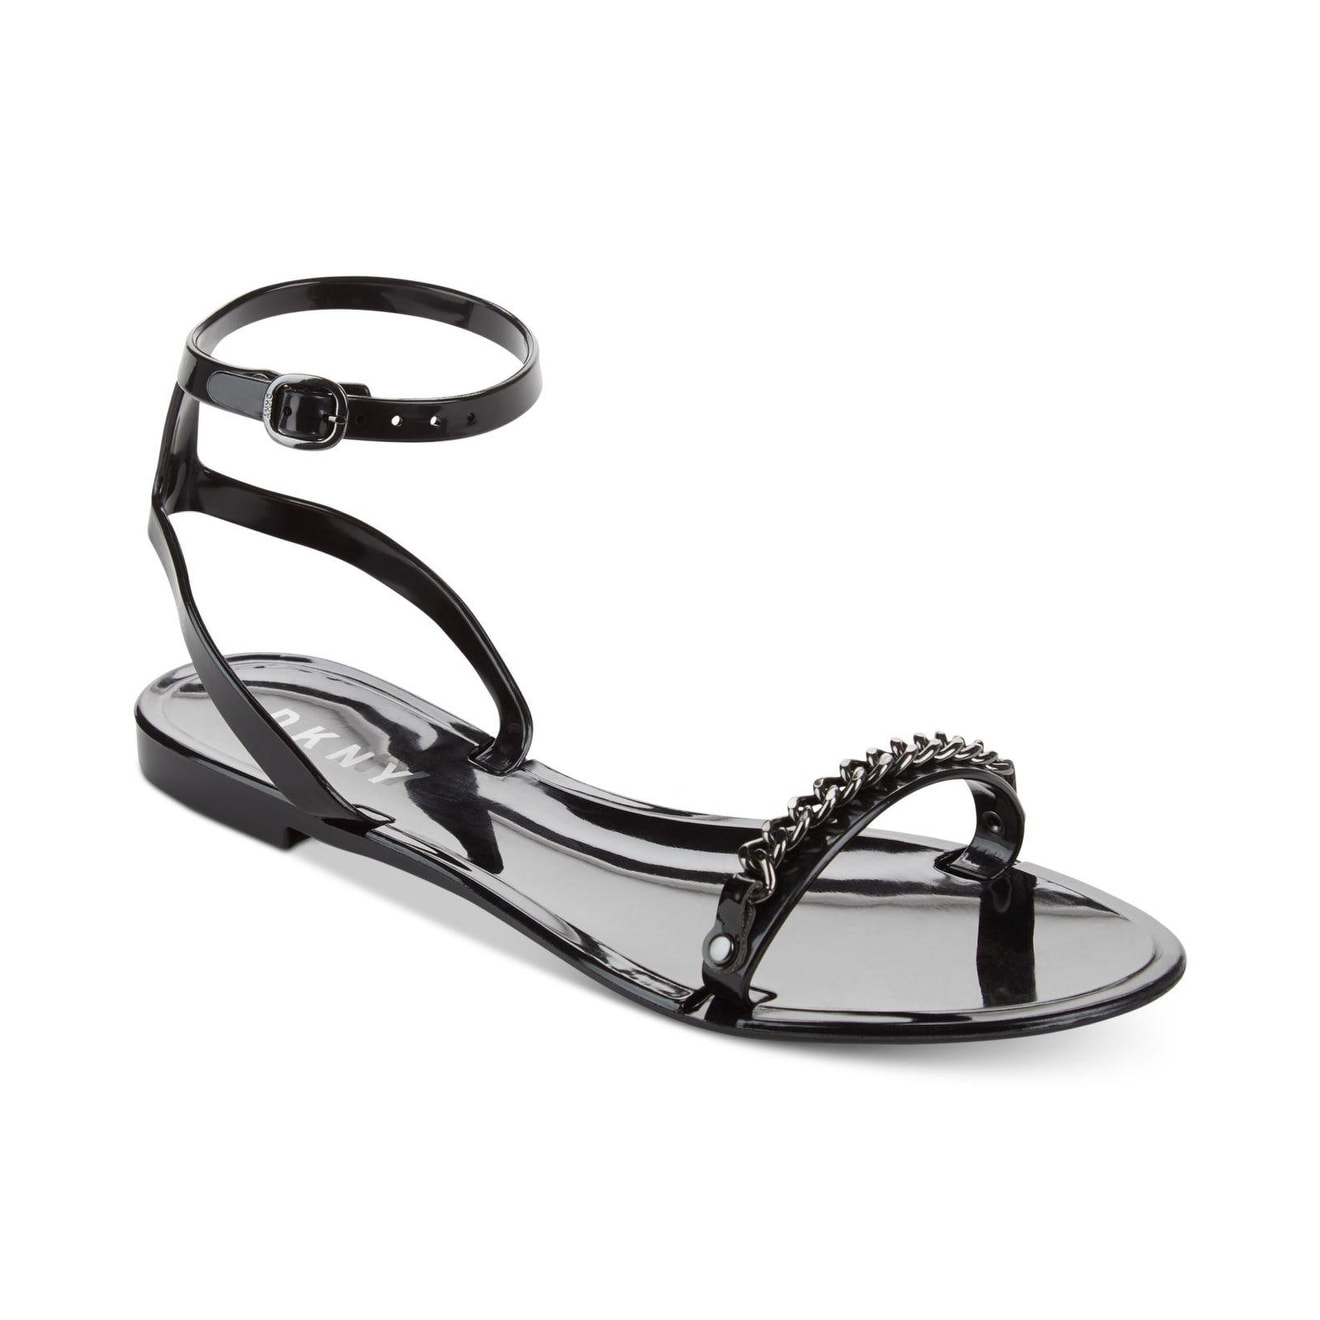 5588b9a44 Shop DKNY Womens Mona Open Toe Beach Ankle Strap Sandals - Free Shipping On  Orders Over  45 - Overstock - 27862884